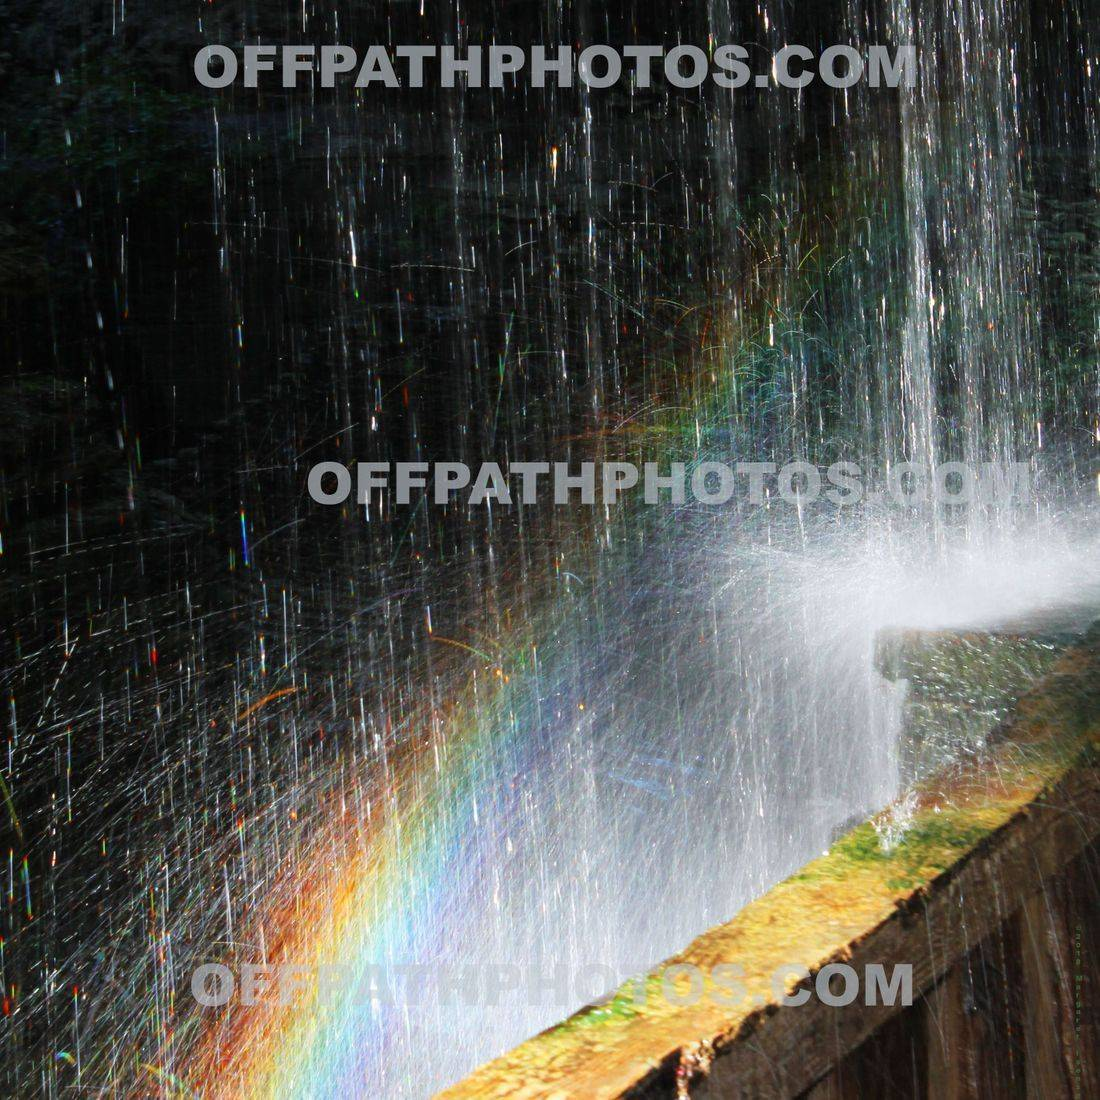 rainbow, water falls, upstate NY, photography, nature, roygbiv, relaxing, park